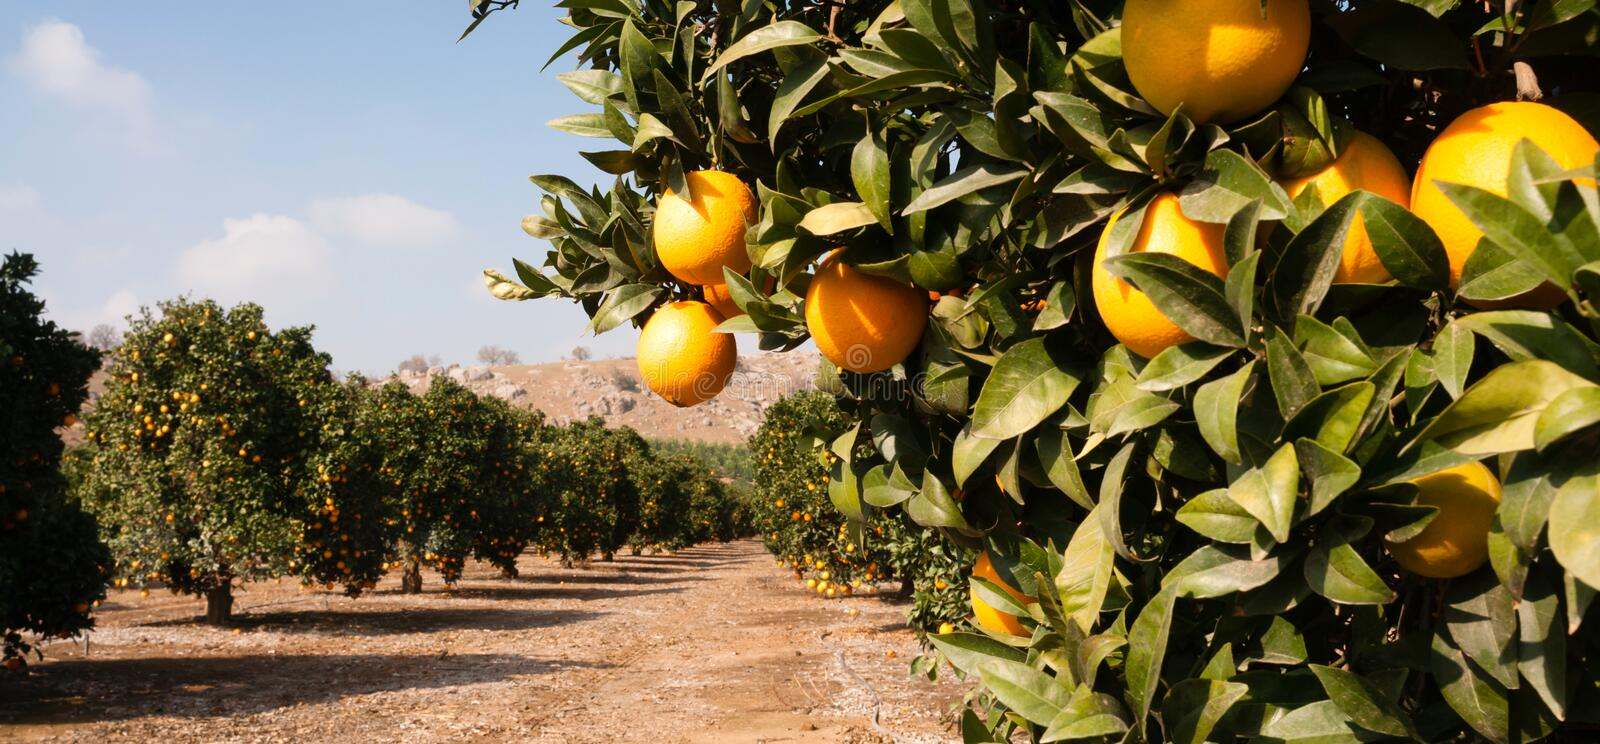 Raw Food Fruit Oranges Ripening Agriculture Farm Orange Grove royalty free stock photo